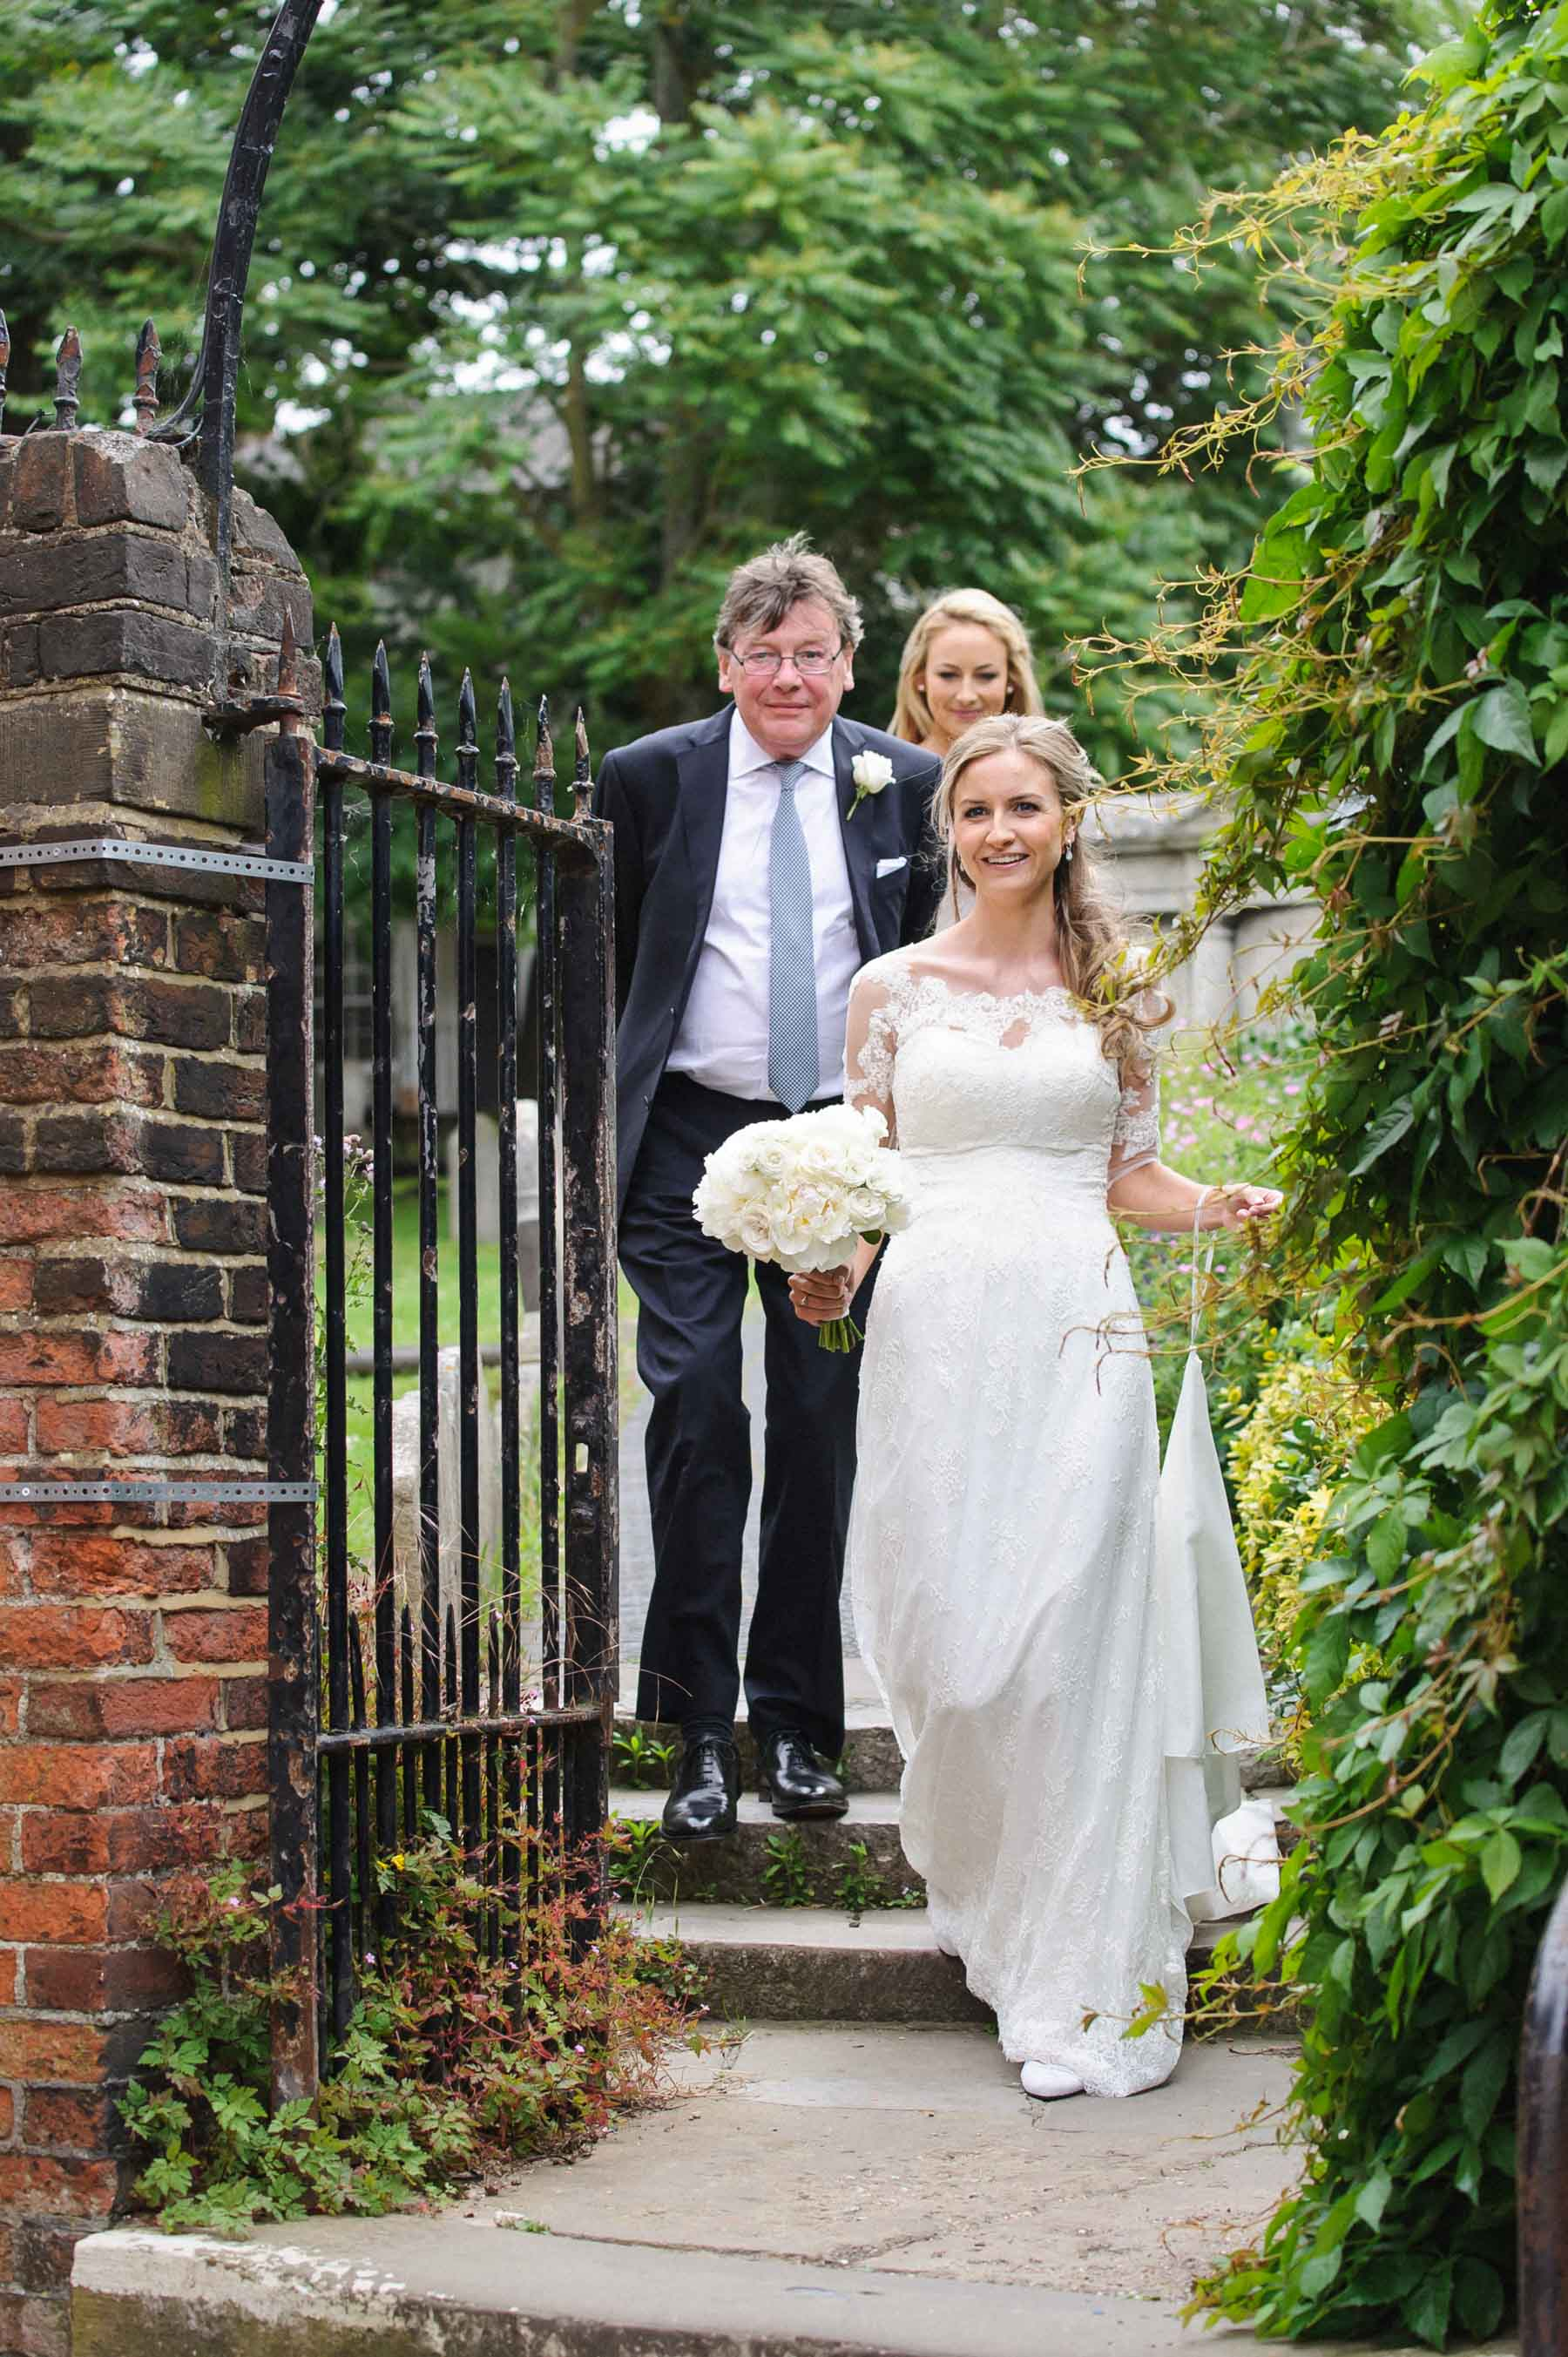 The beautiful bride arrives with her father at Holy Trinity Church Guildford